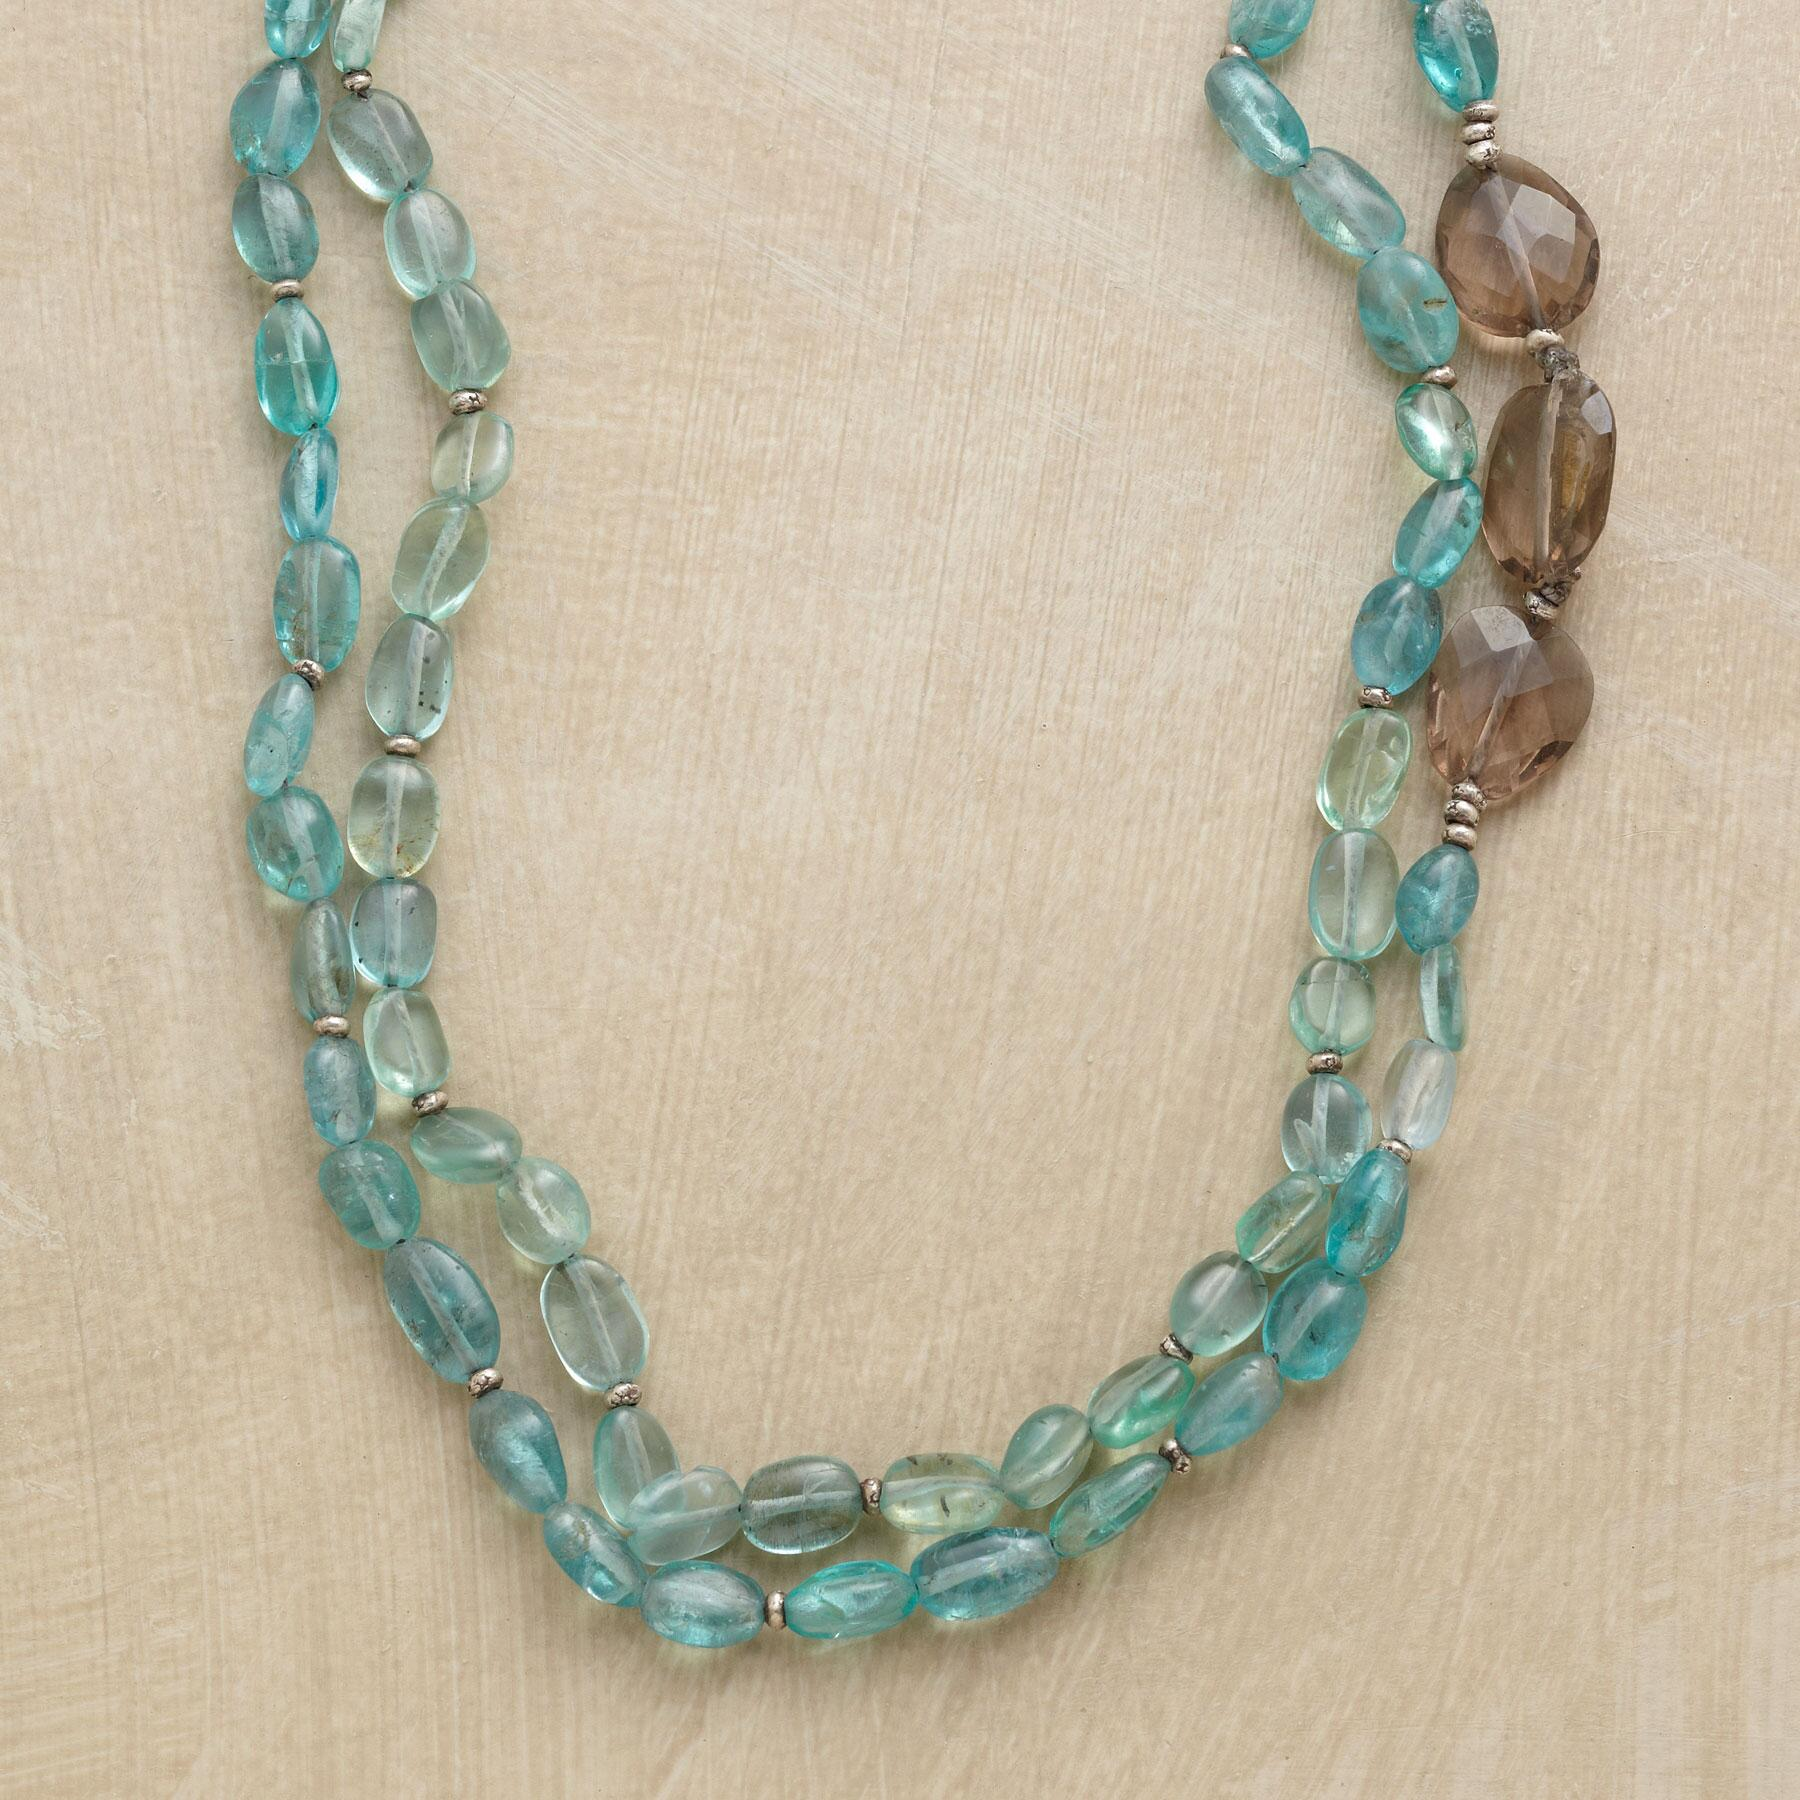 TWO BLUE NECKLACE: View 1